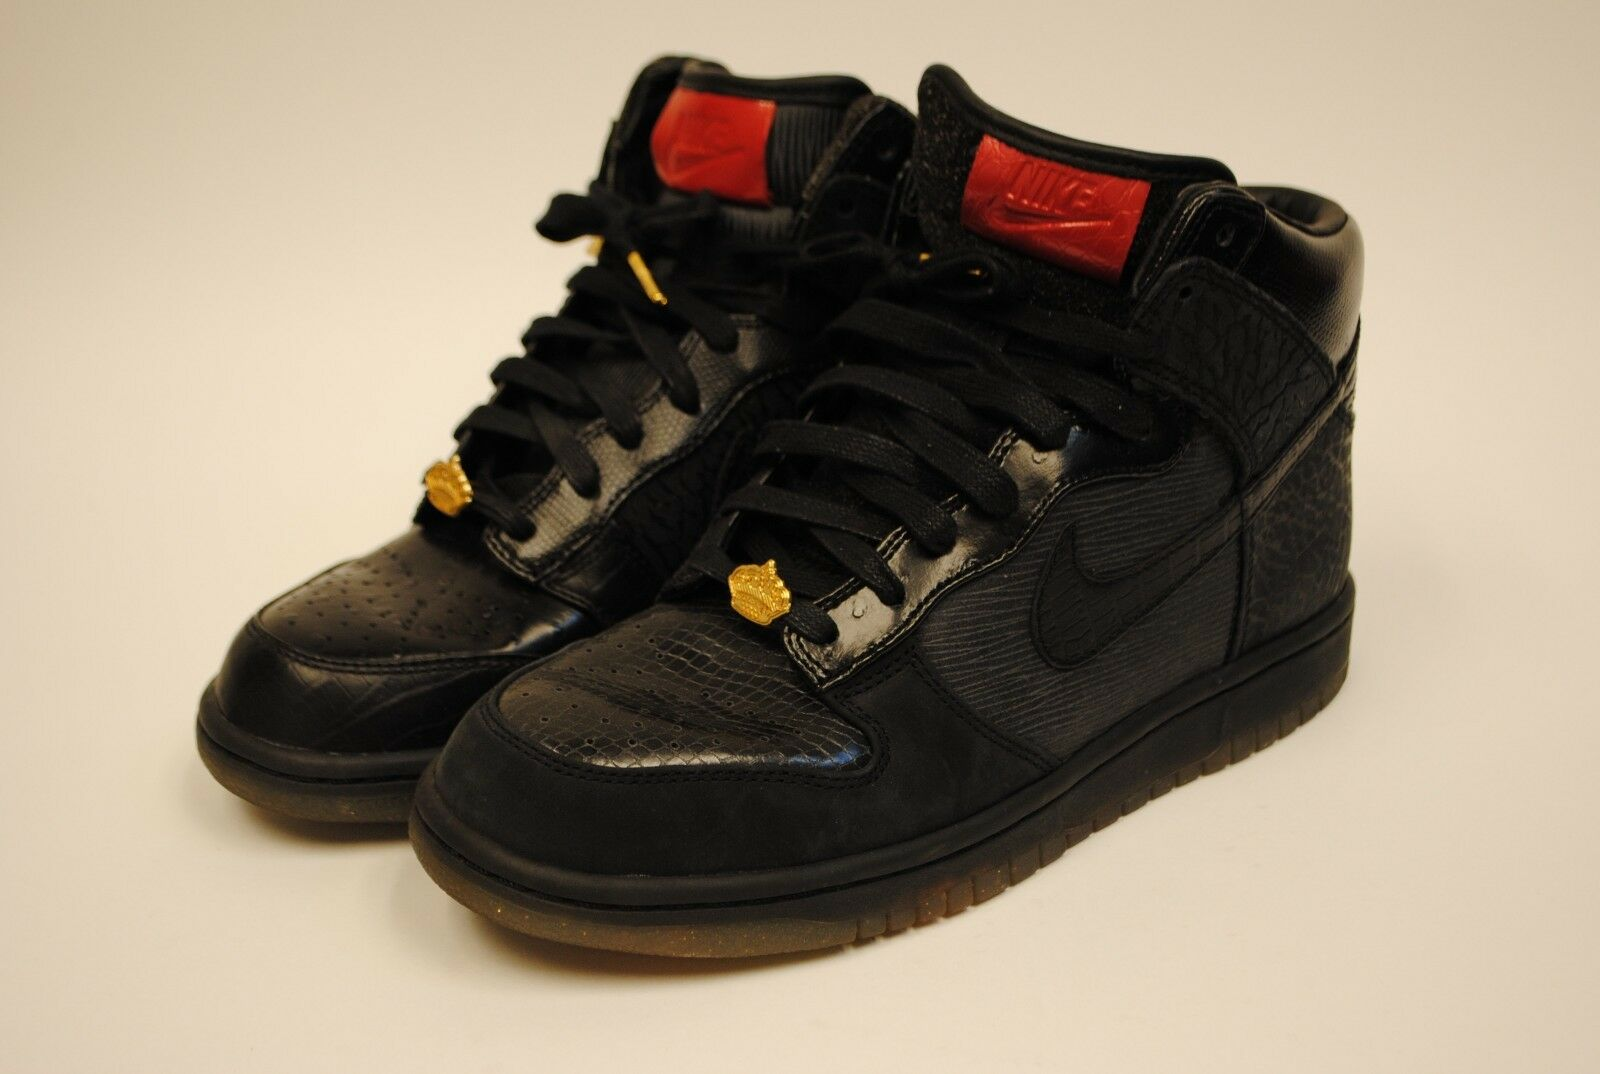 2011 Nike Dunk HI QS Mighty Crown 503766 001 Size 8